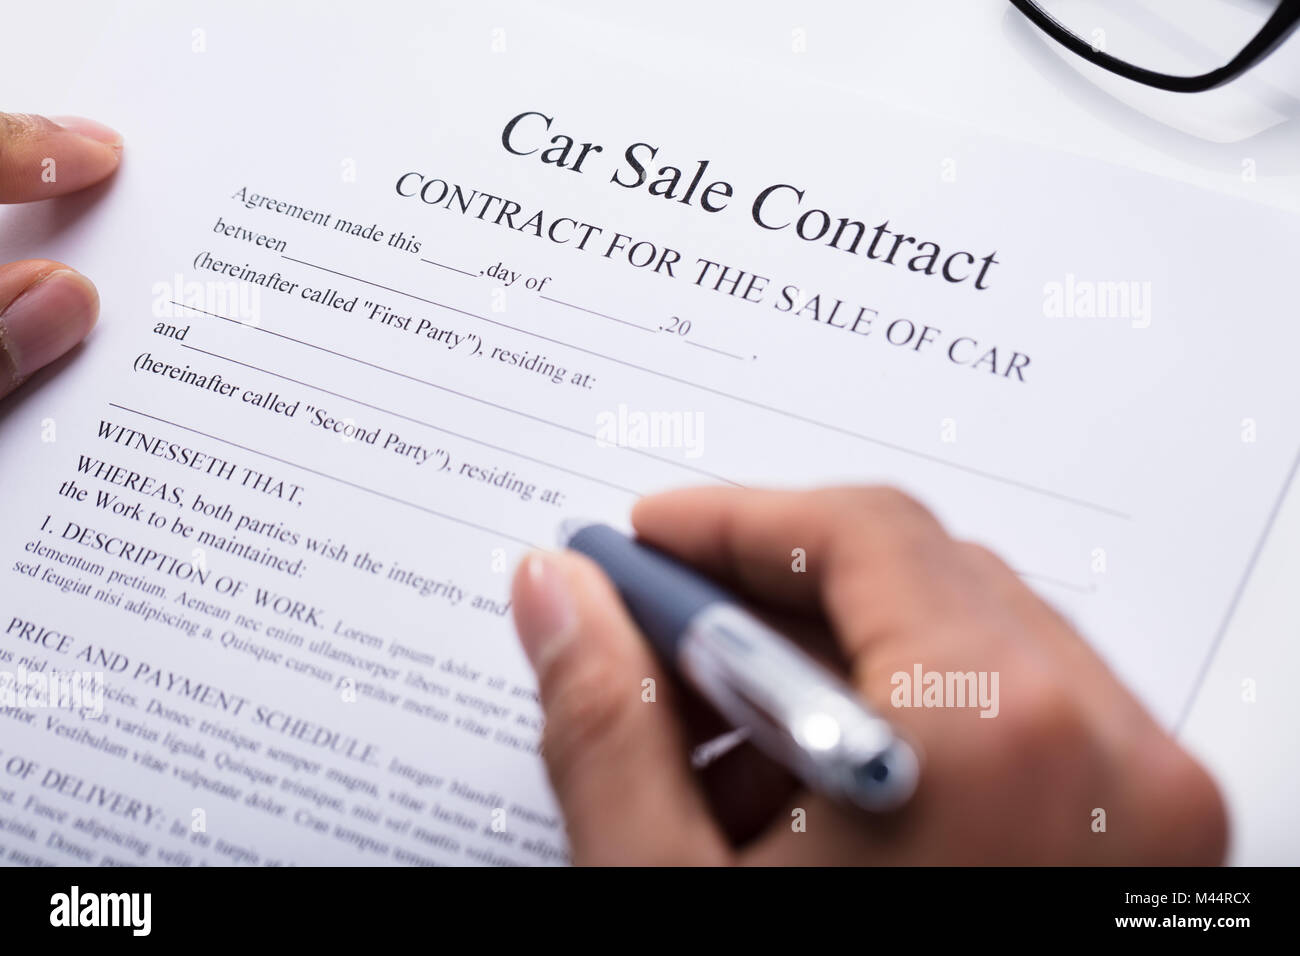 close up of a persons hand filling car sale contract form